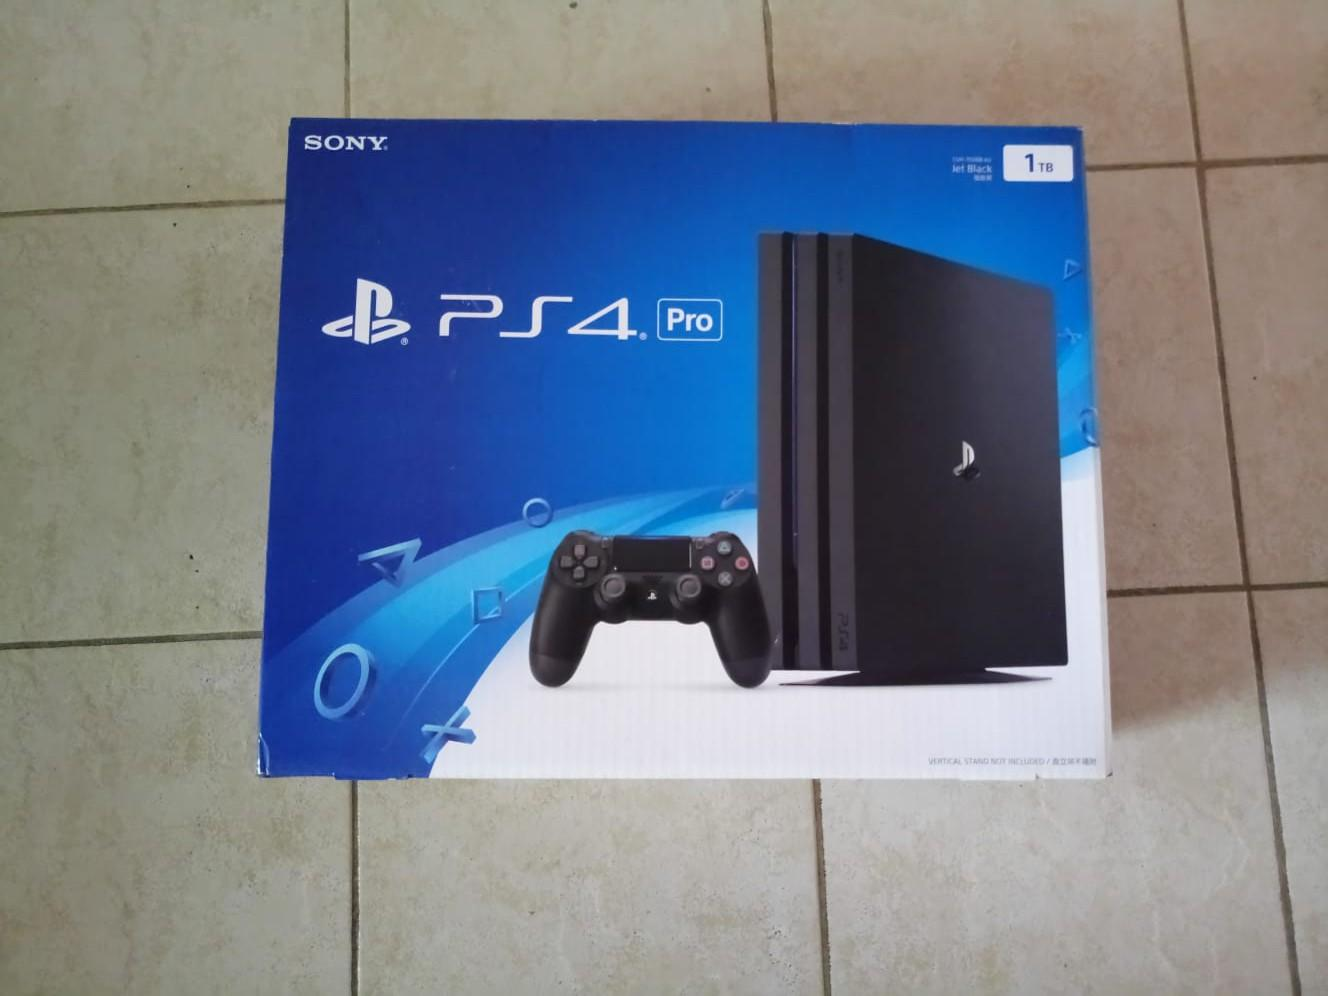 Sony PS4 PRO 1TB with Box, Toys & Games, Video Gaming